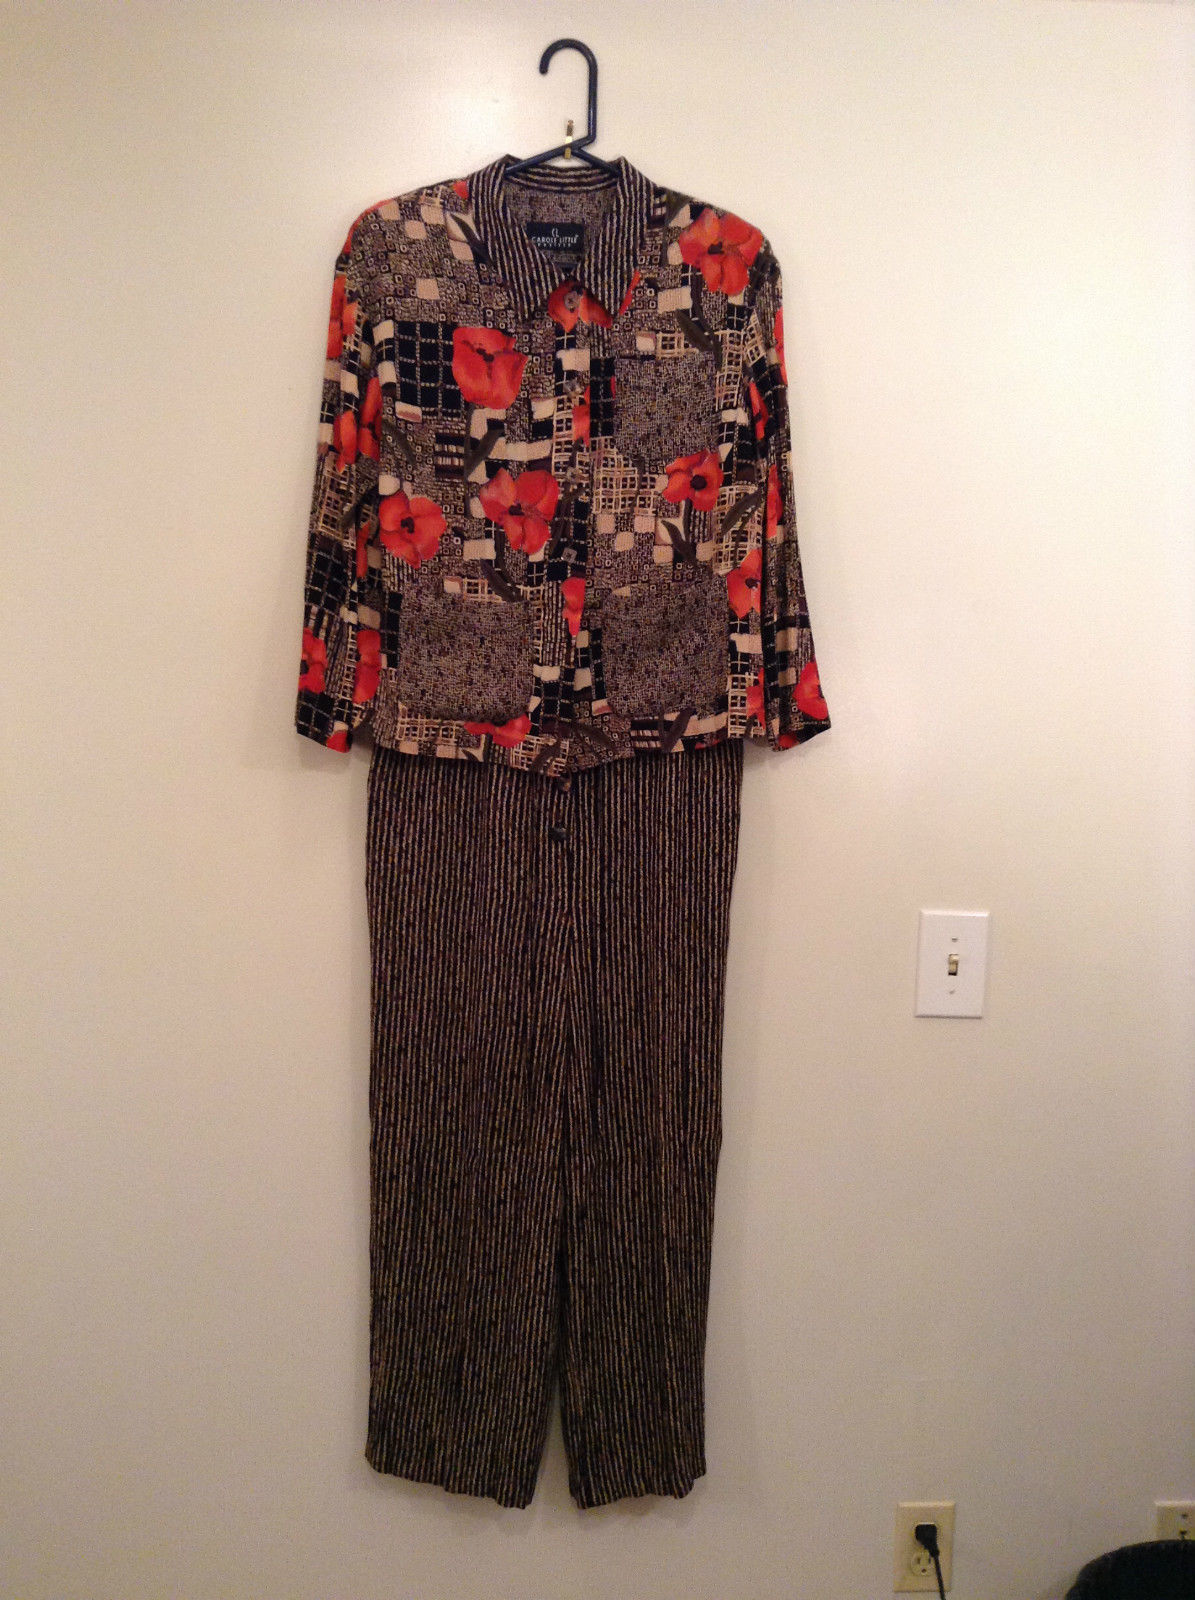 Carole Little Petites Blouse and Pant Set Abstract Print with Brown Red Flowers